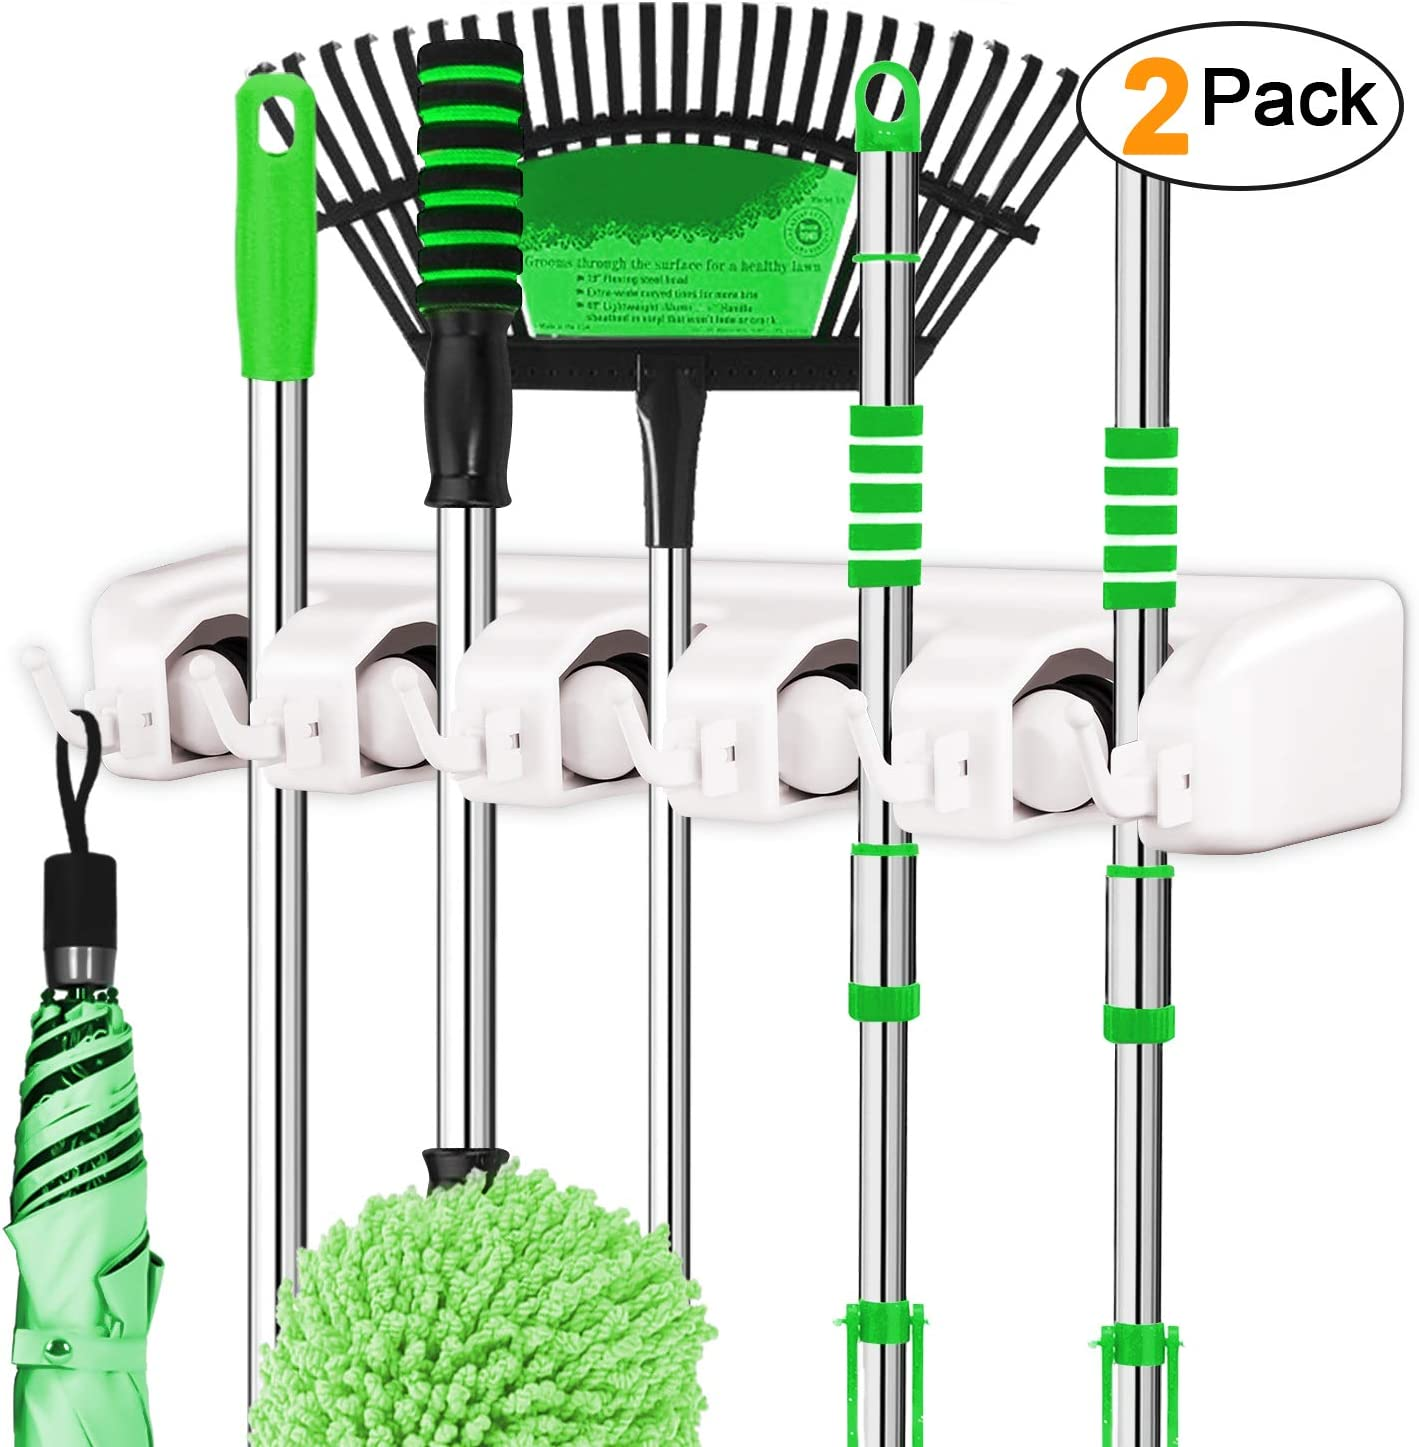 LETMY Broom Holder Wall Mounted - Mop and Broom Holder - Garage Storage Rack&Garden Tool Organizer - 5 Position 6 Hooks for Home, Kitchen, Garden, Tools, Garage Organizing (White, 2 Pack)